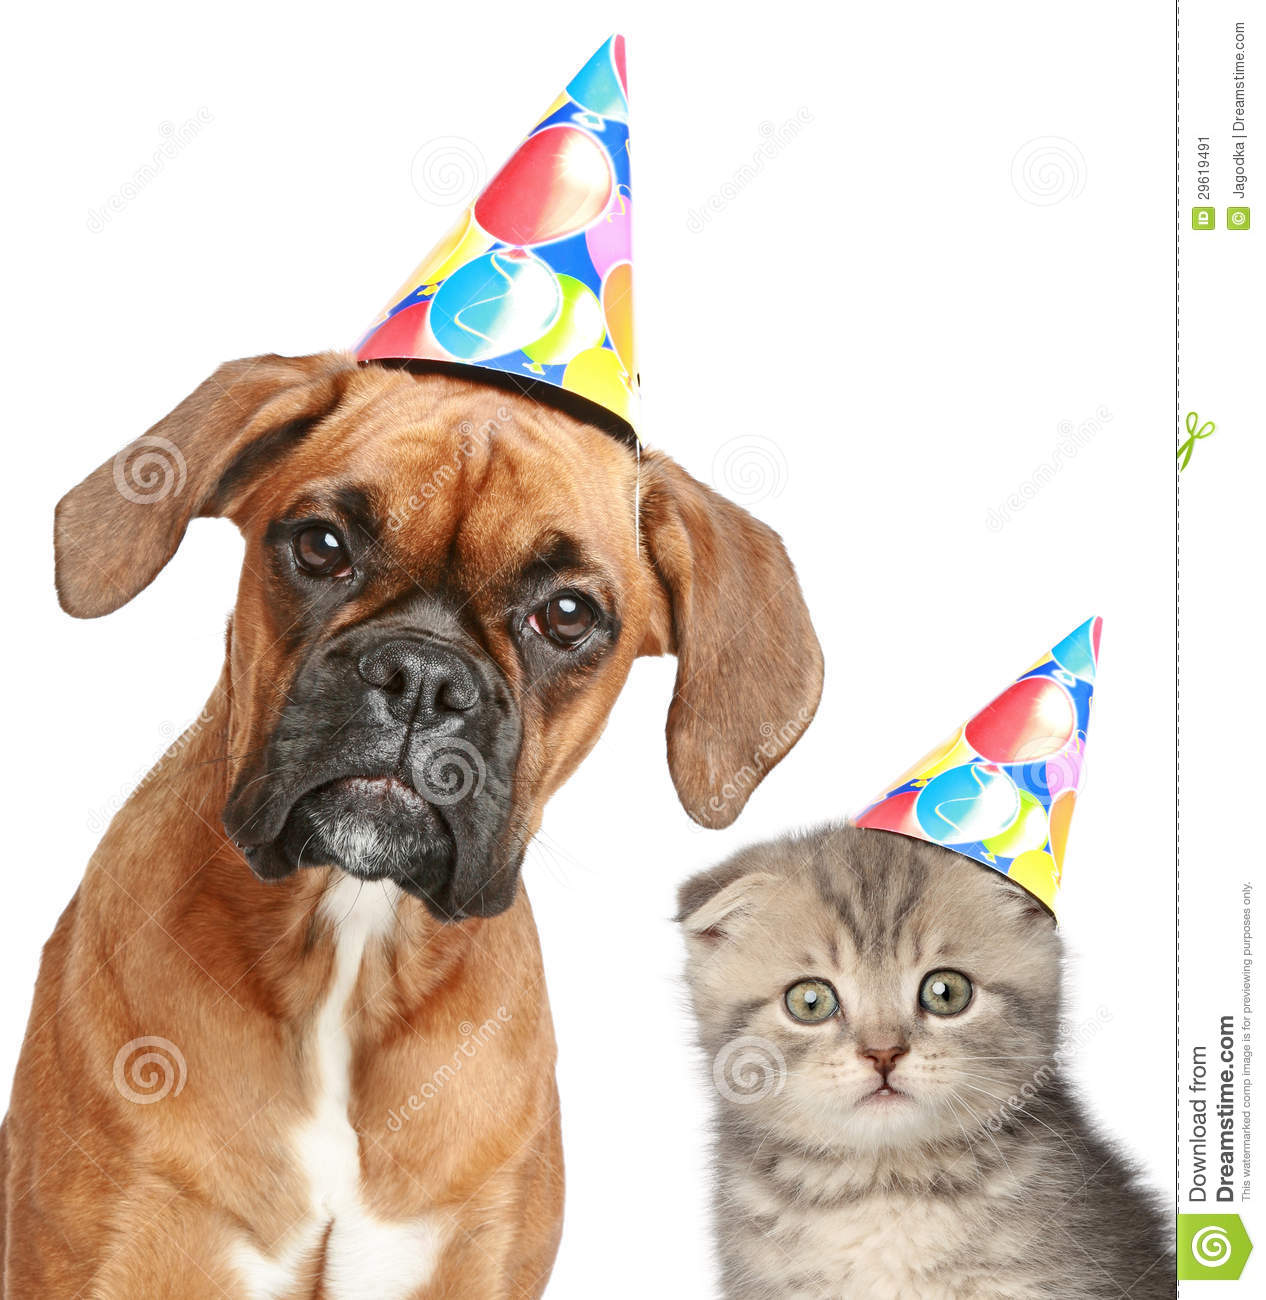 happy birthday boxer dog ; dog-cat-party-cap-white-background-29619491